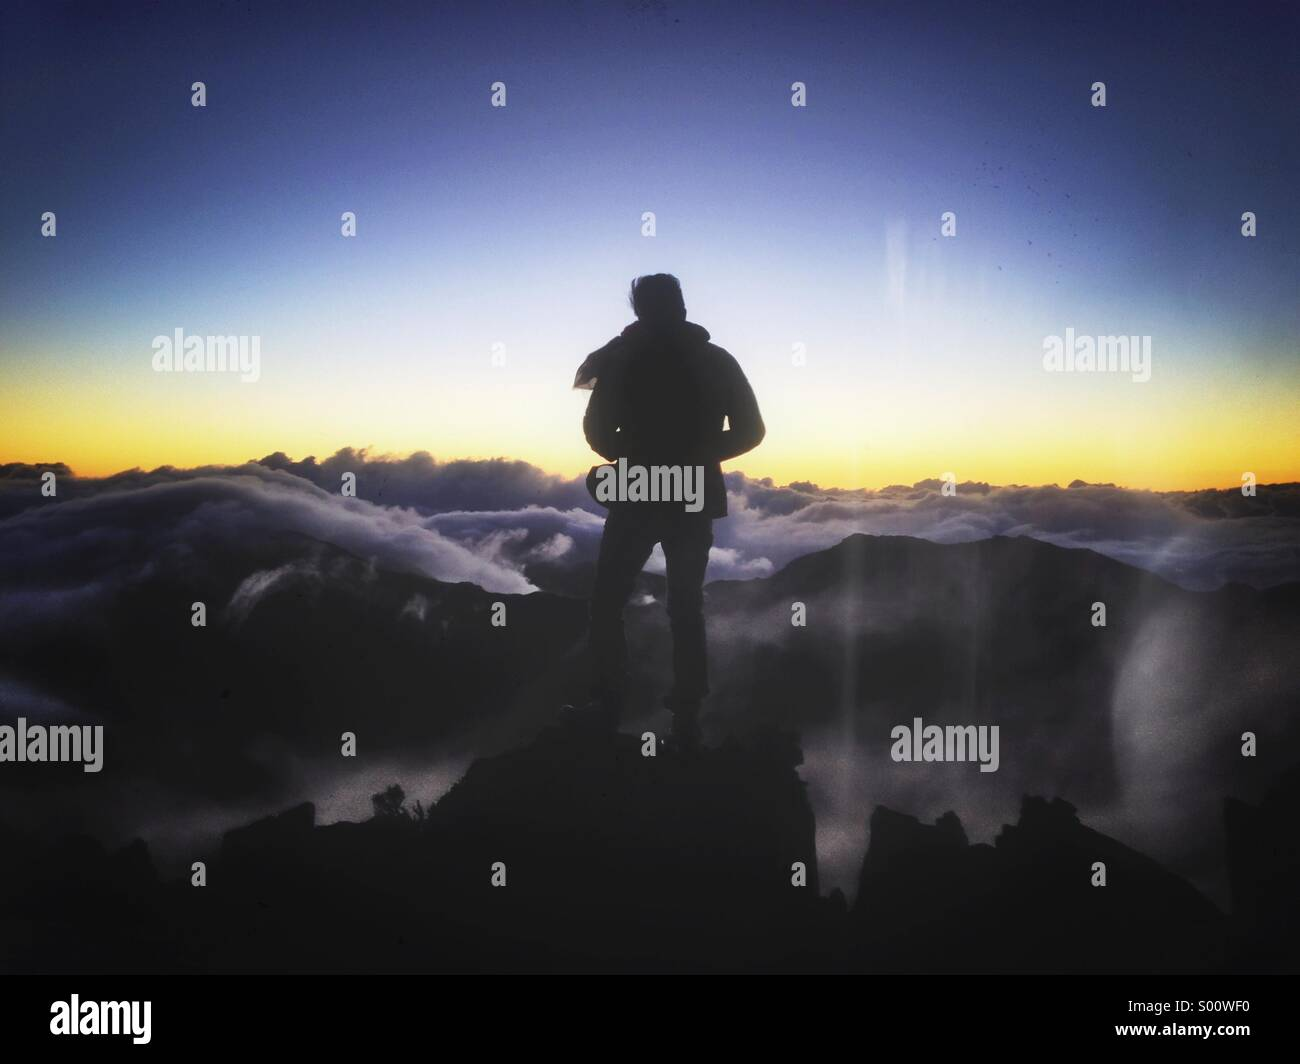 Sunrise at the top of Haleakala mountain in Maui. - Stock Image